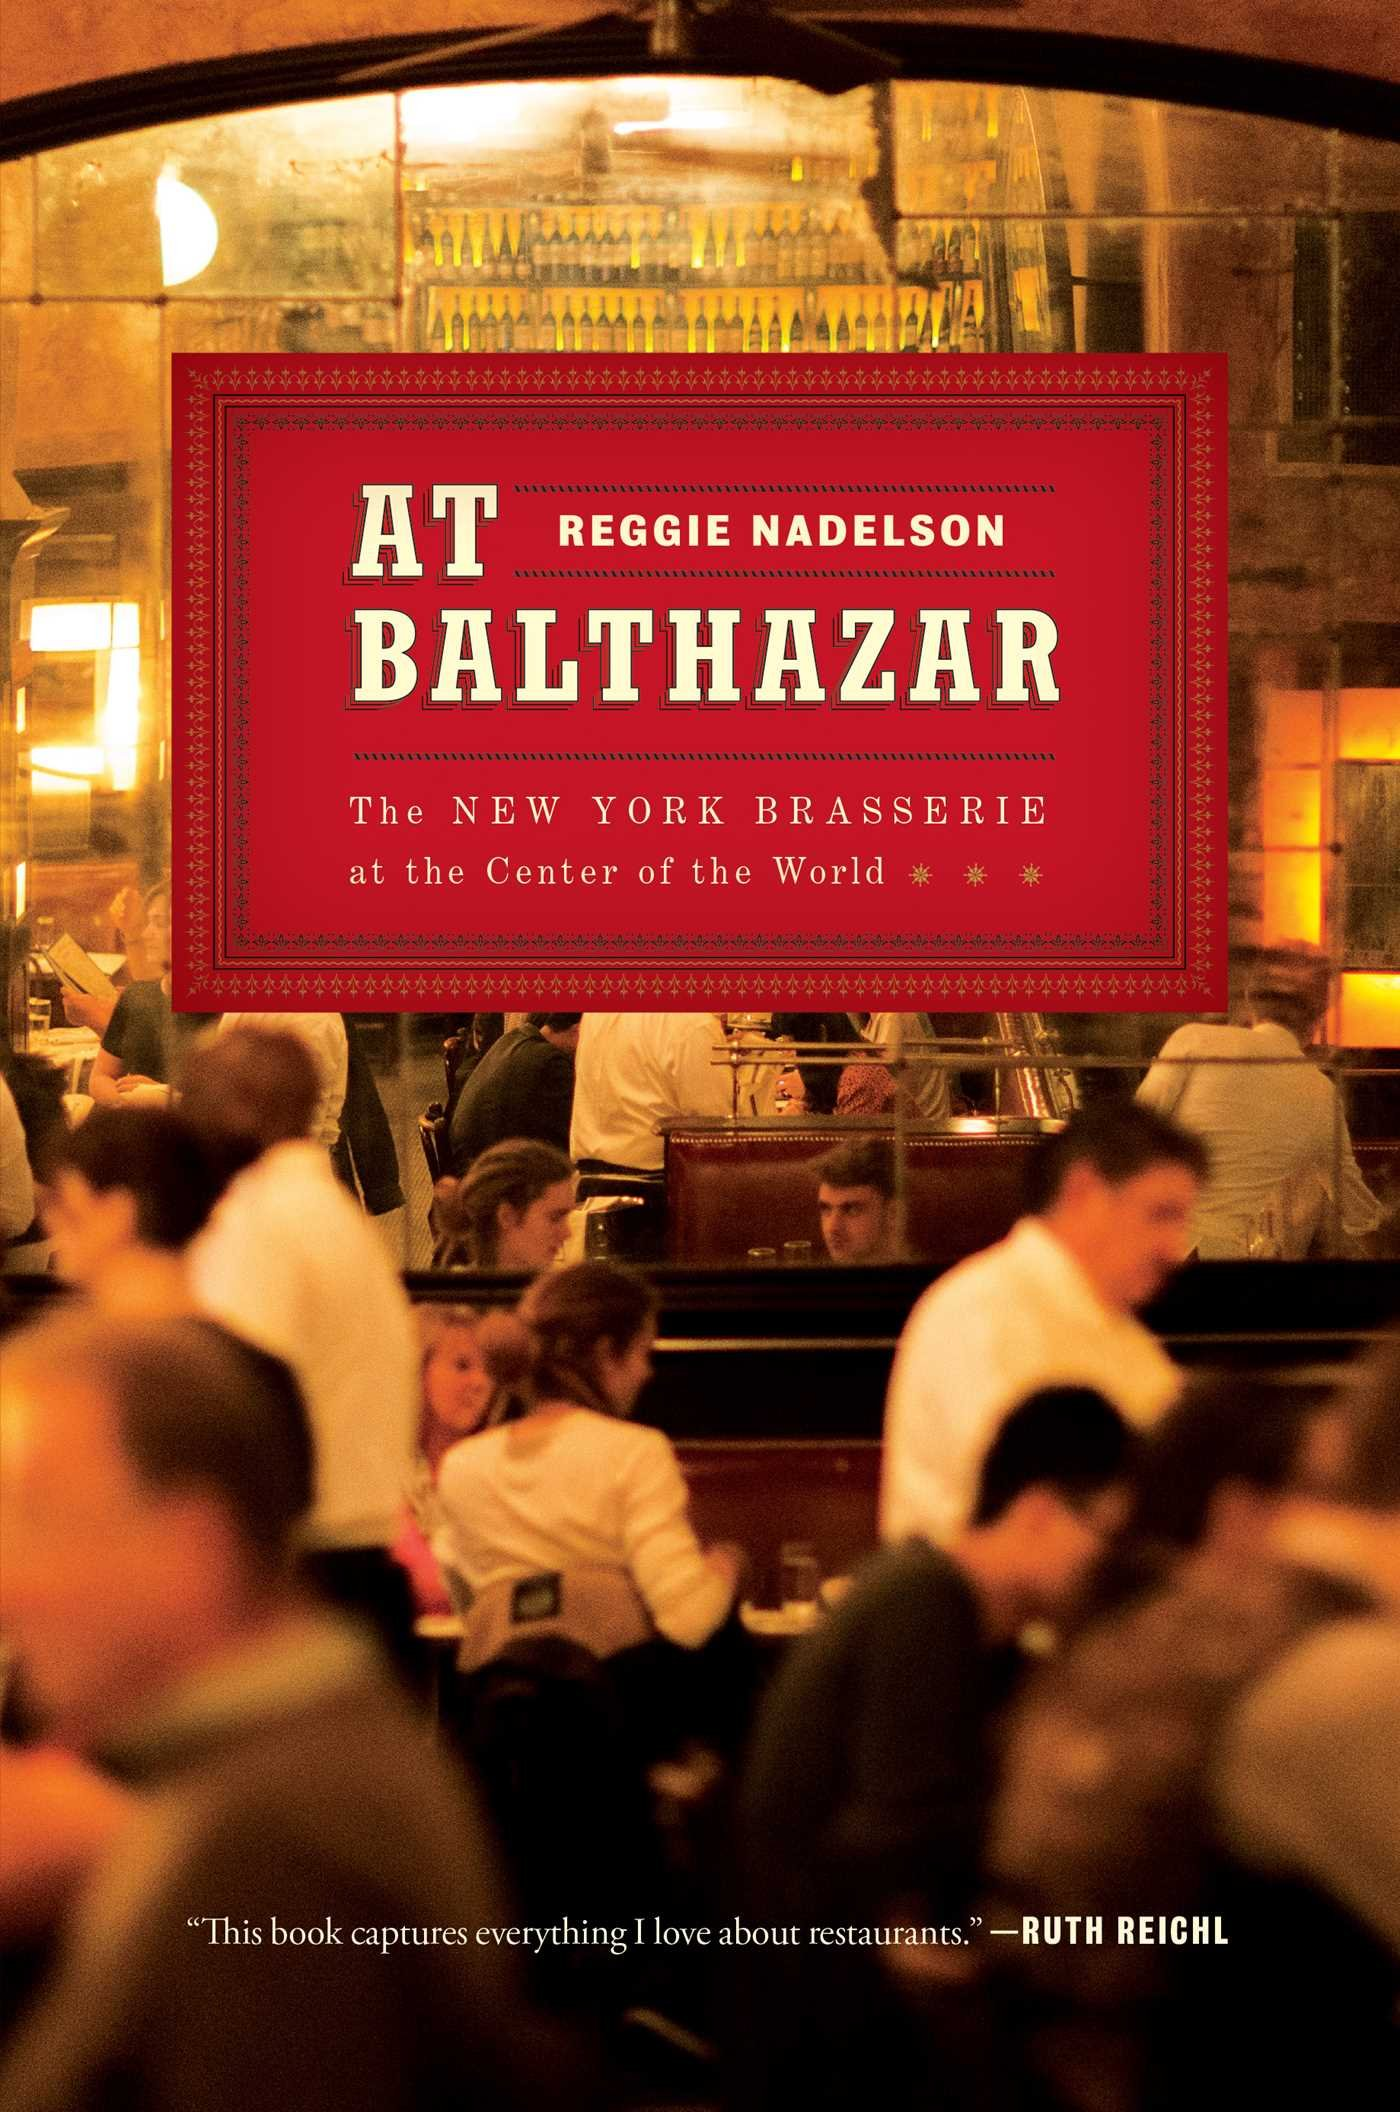 At Balthazar: The New York Brasserie at the Center of the